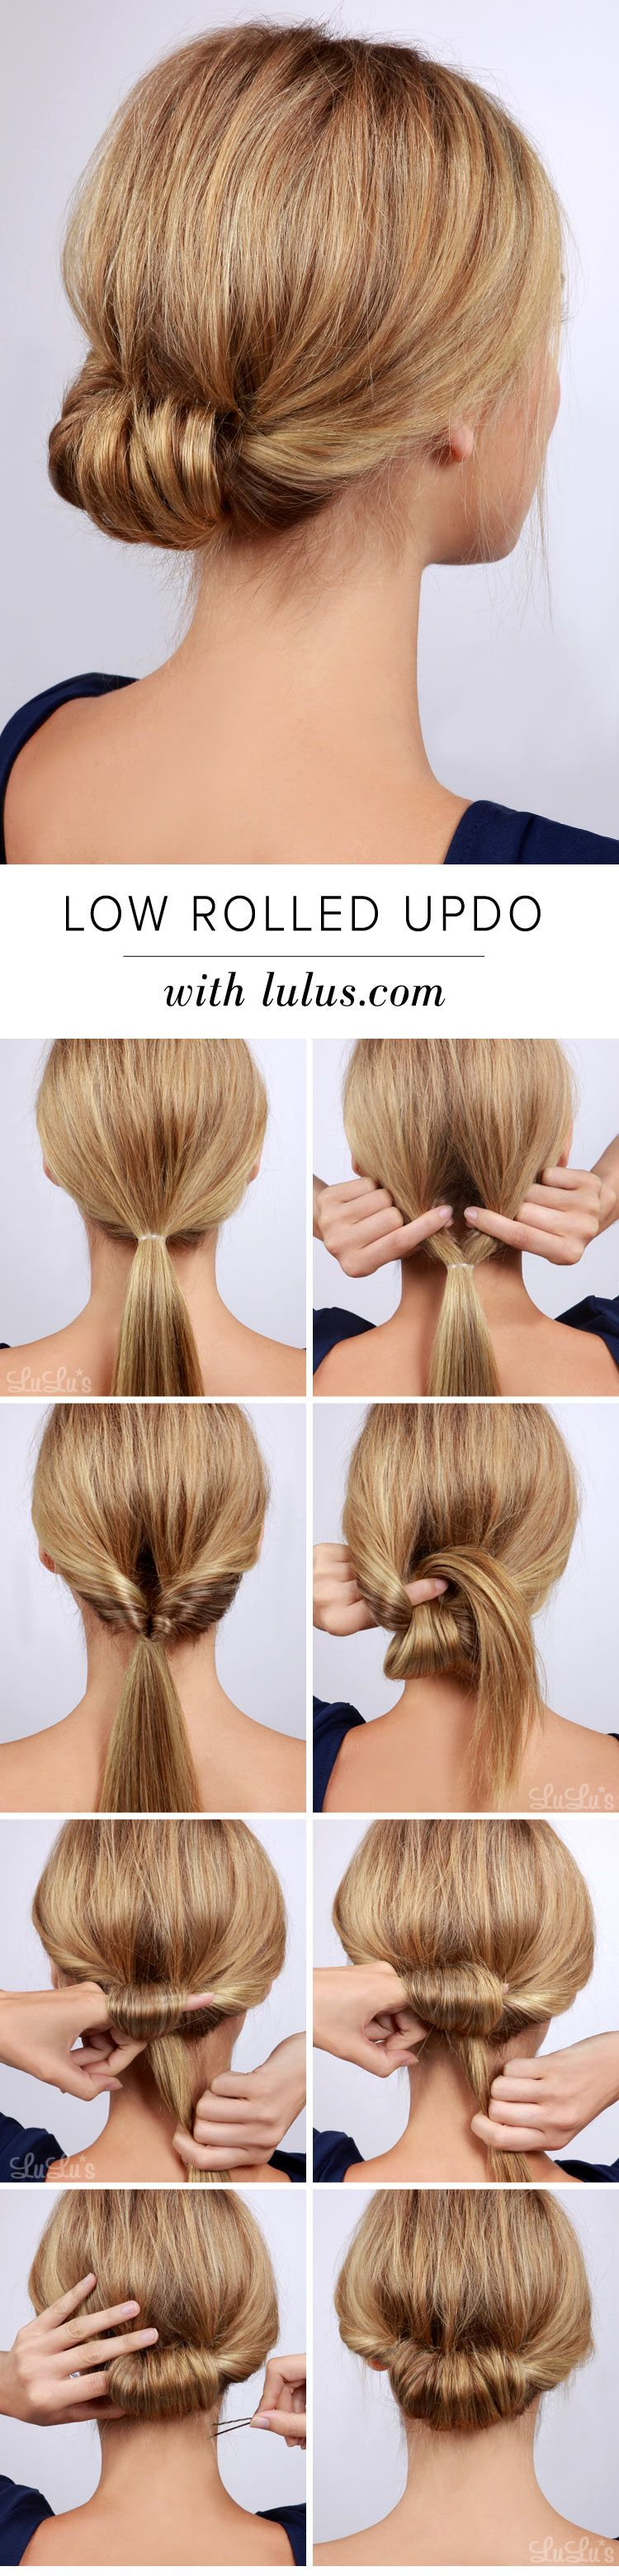 Lulus How To Low Rolled Updo Hair Tutorial